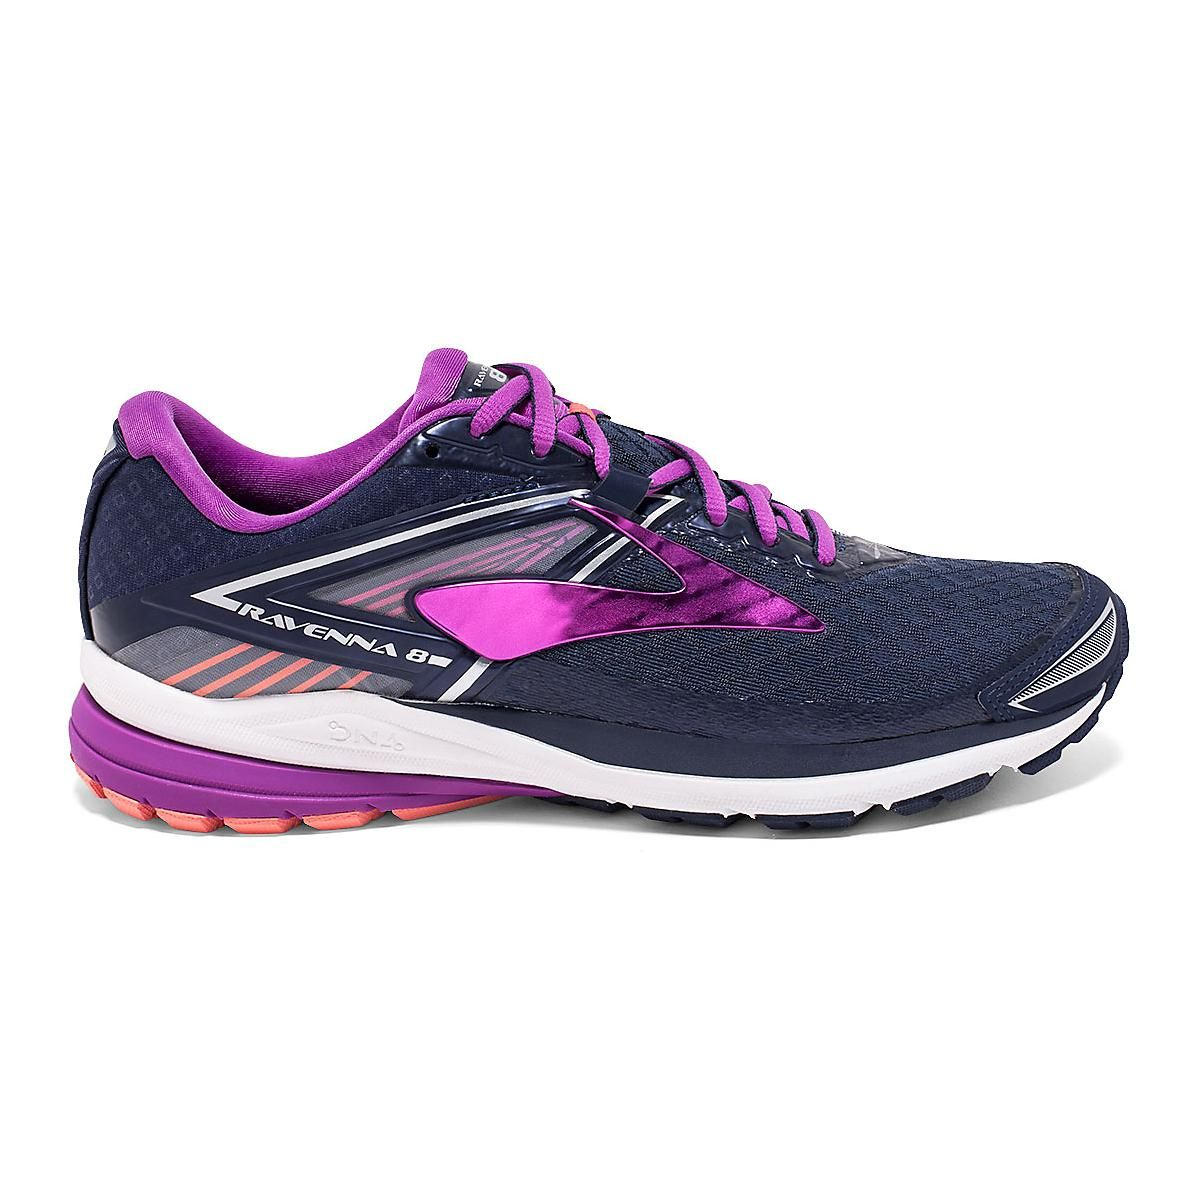 half off 62ad1 4cb8a Ravenna 8 | Work-out LOVE | Brooks running shoes, Shoes ...